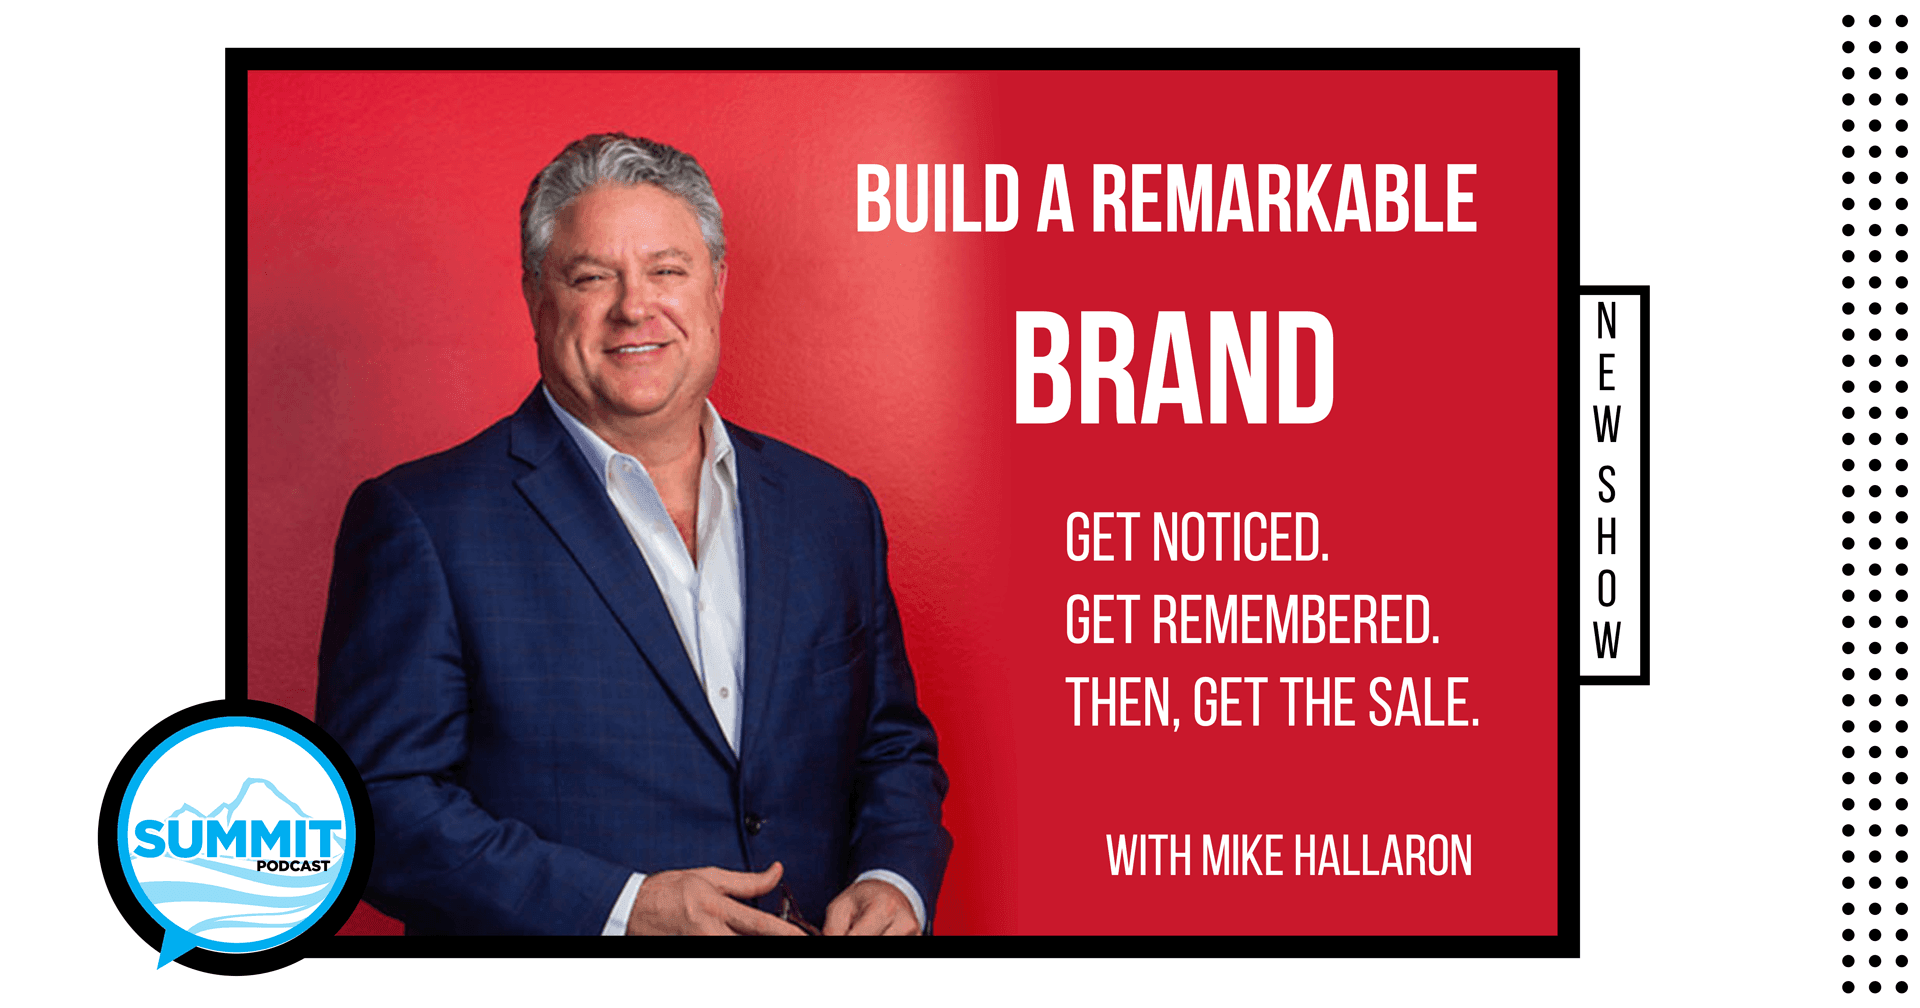 Summit Podcast - Brand building with Mike Hallaron